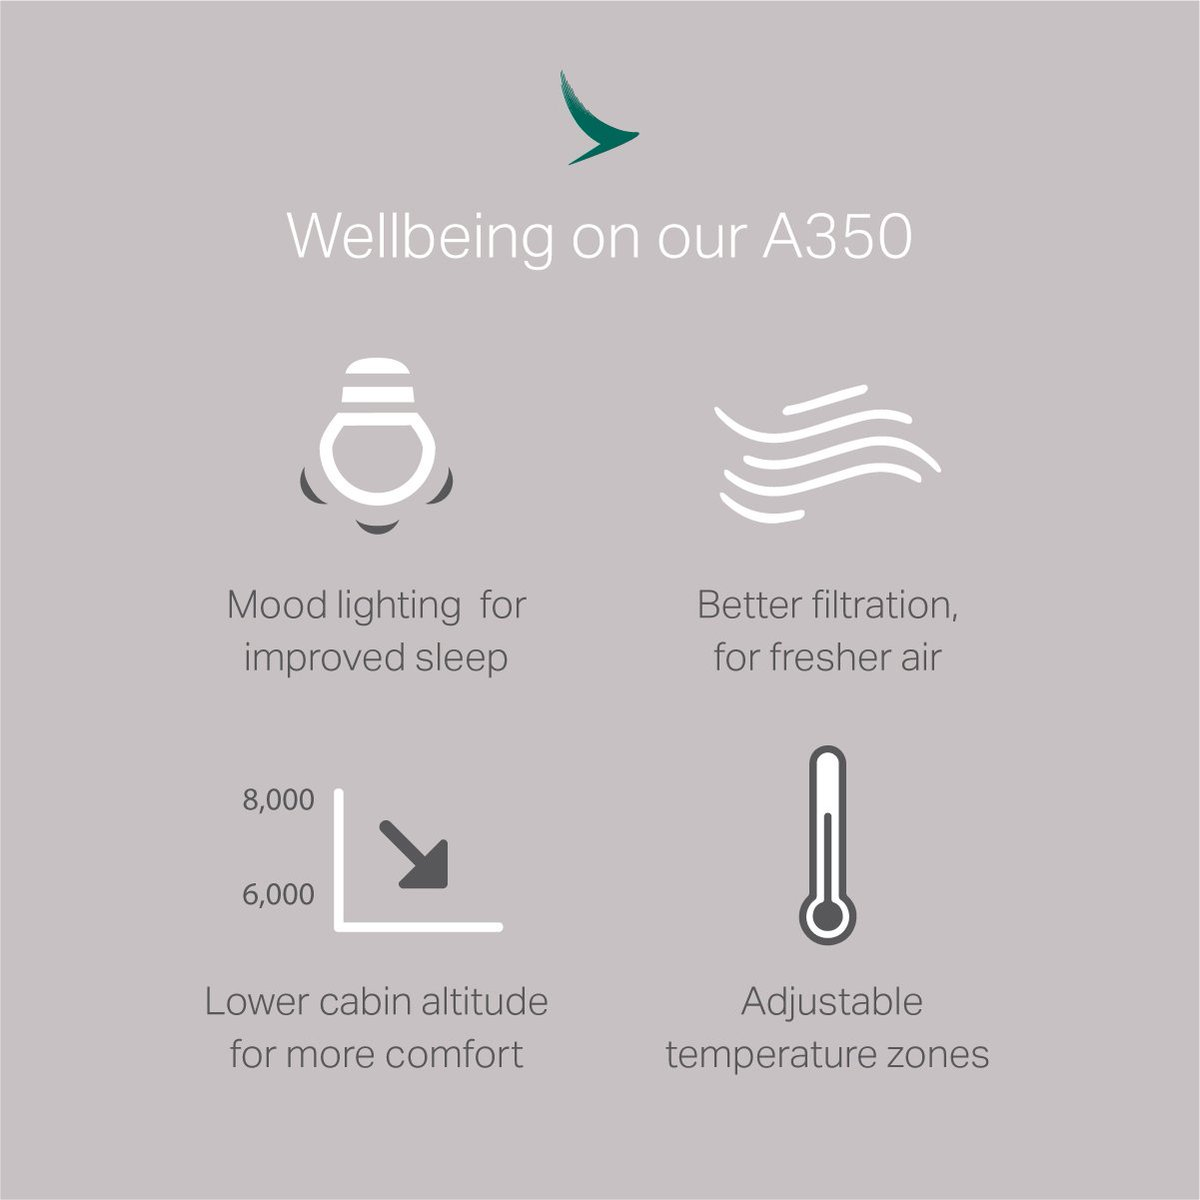 The A350 is focused on your well-being. Learn more about it from @NZStuff here: